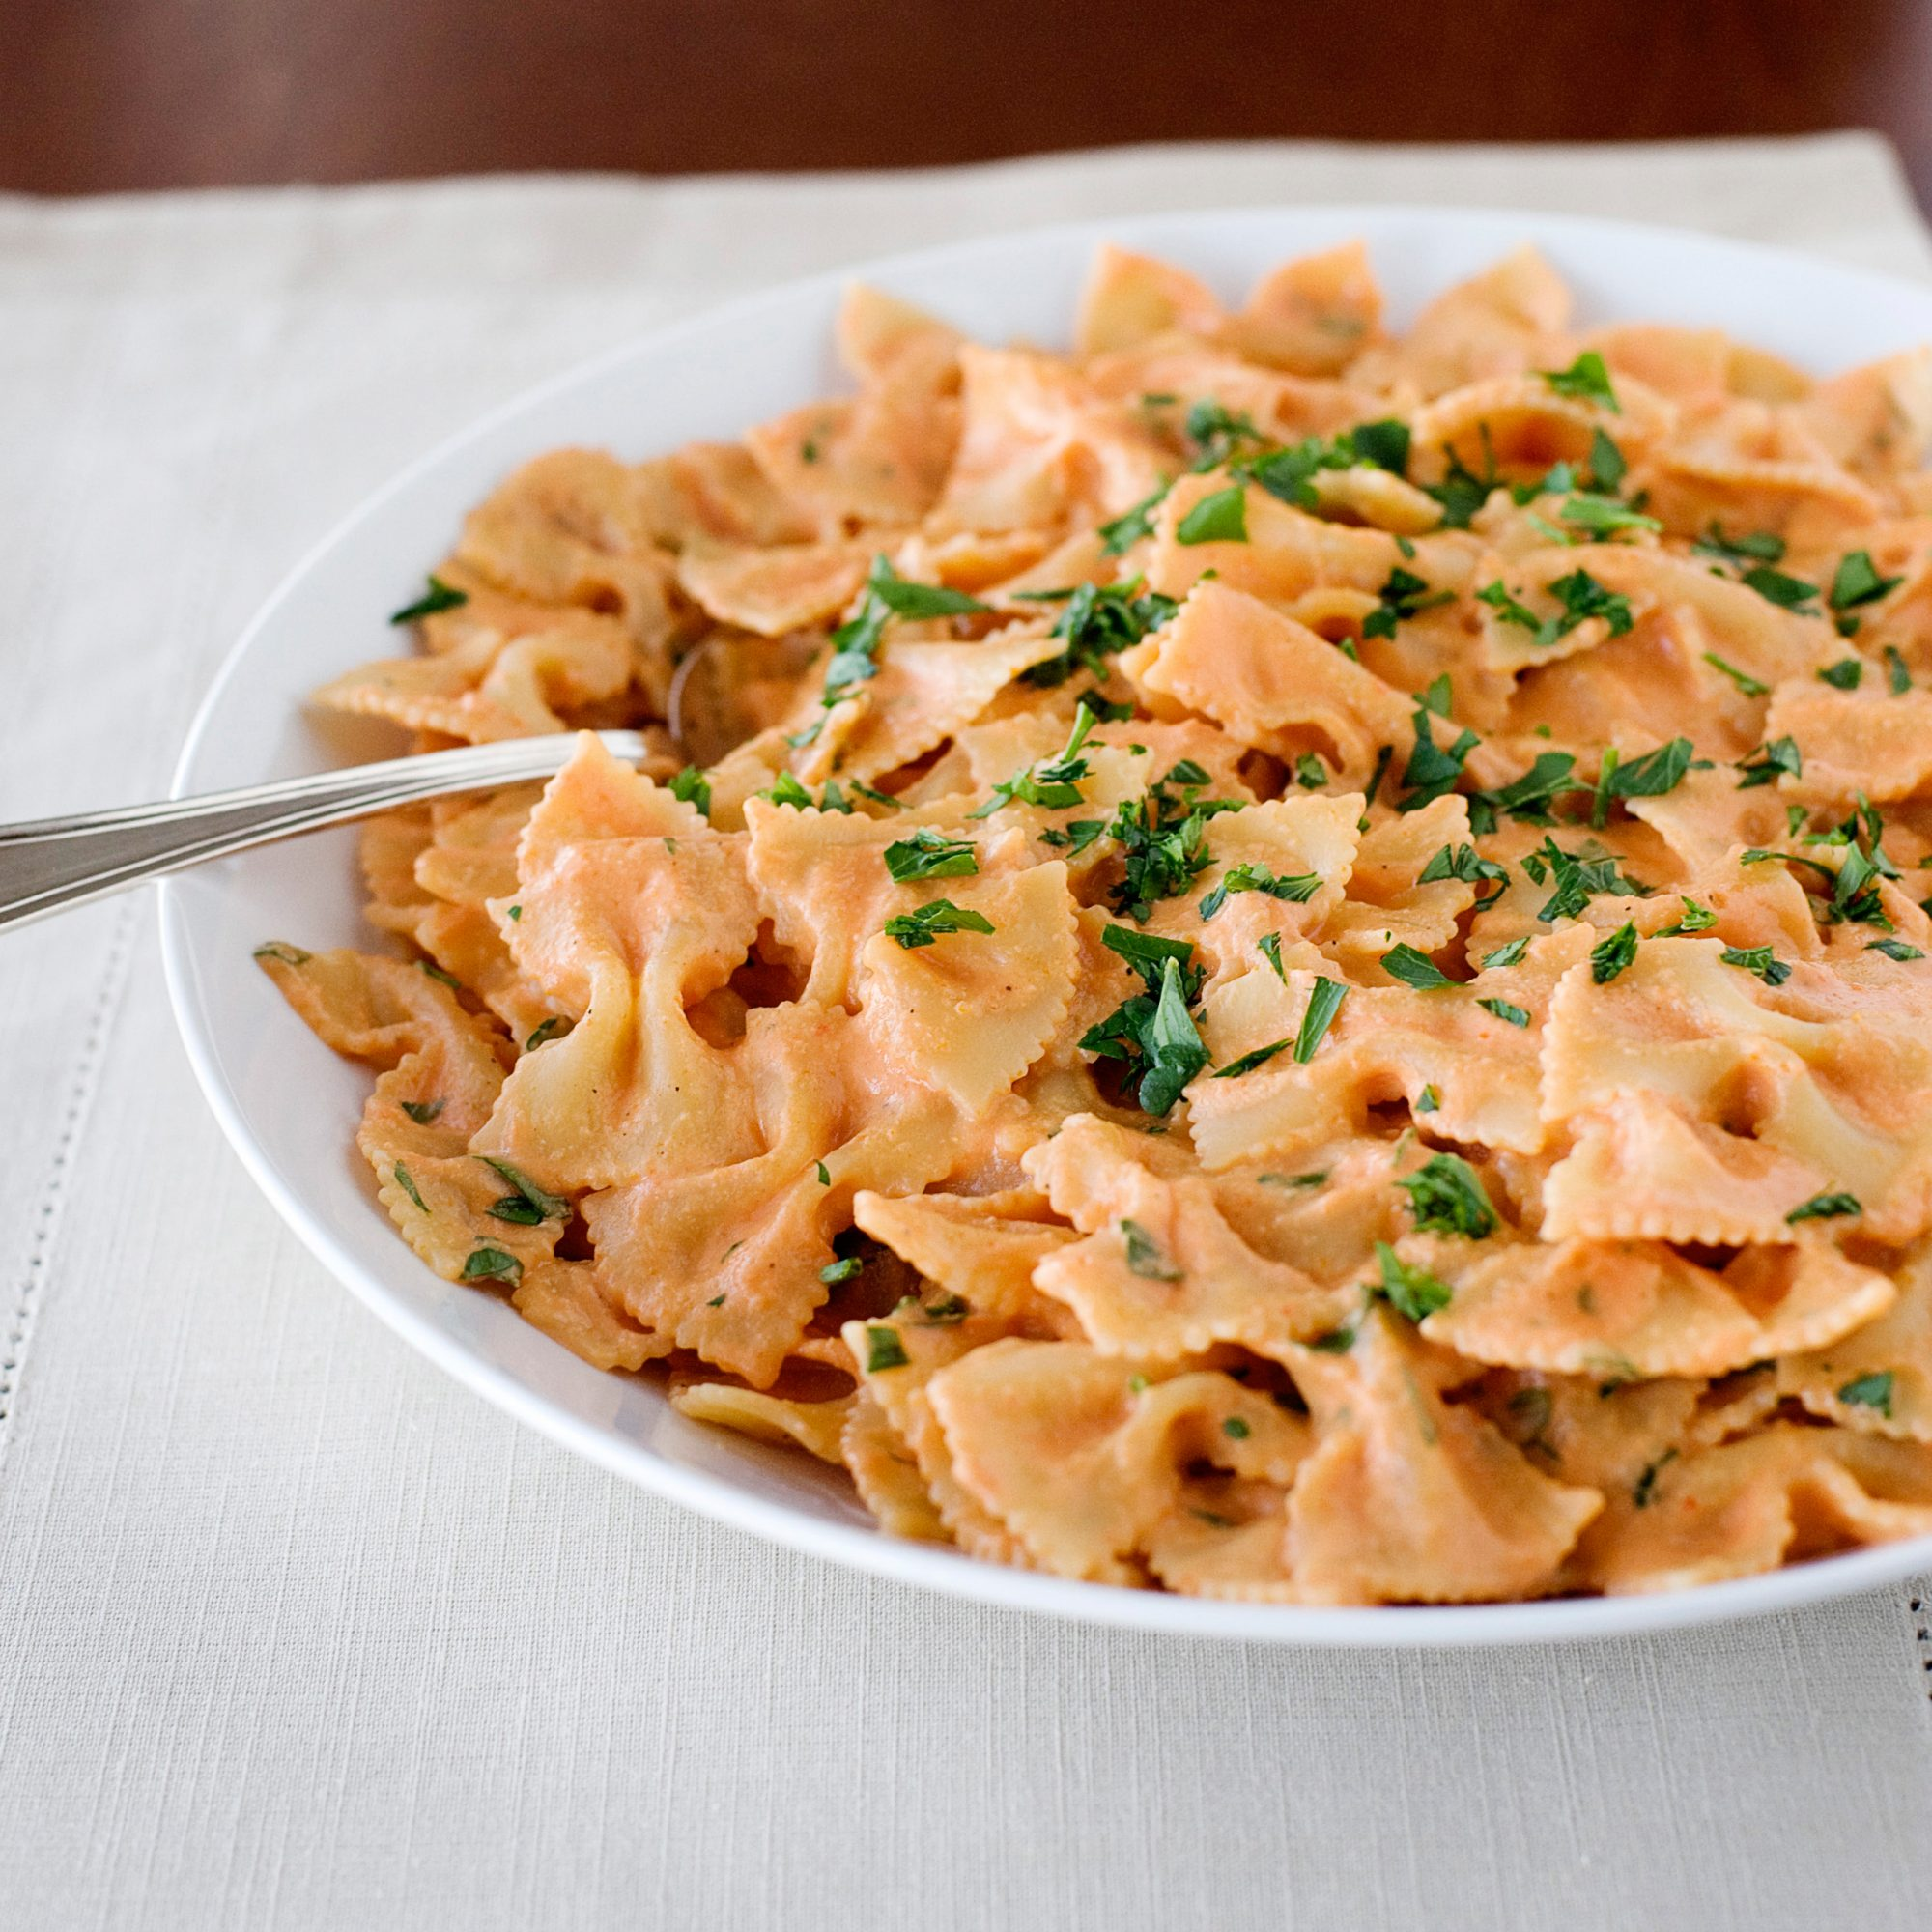 images-sys-201202-r-bowties-with-tomato-scallion-cream.jpg